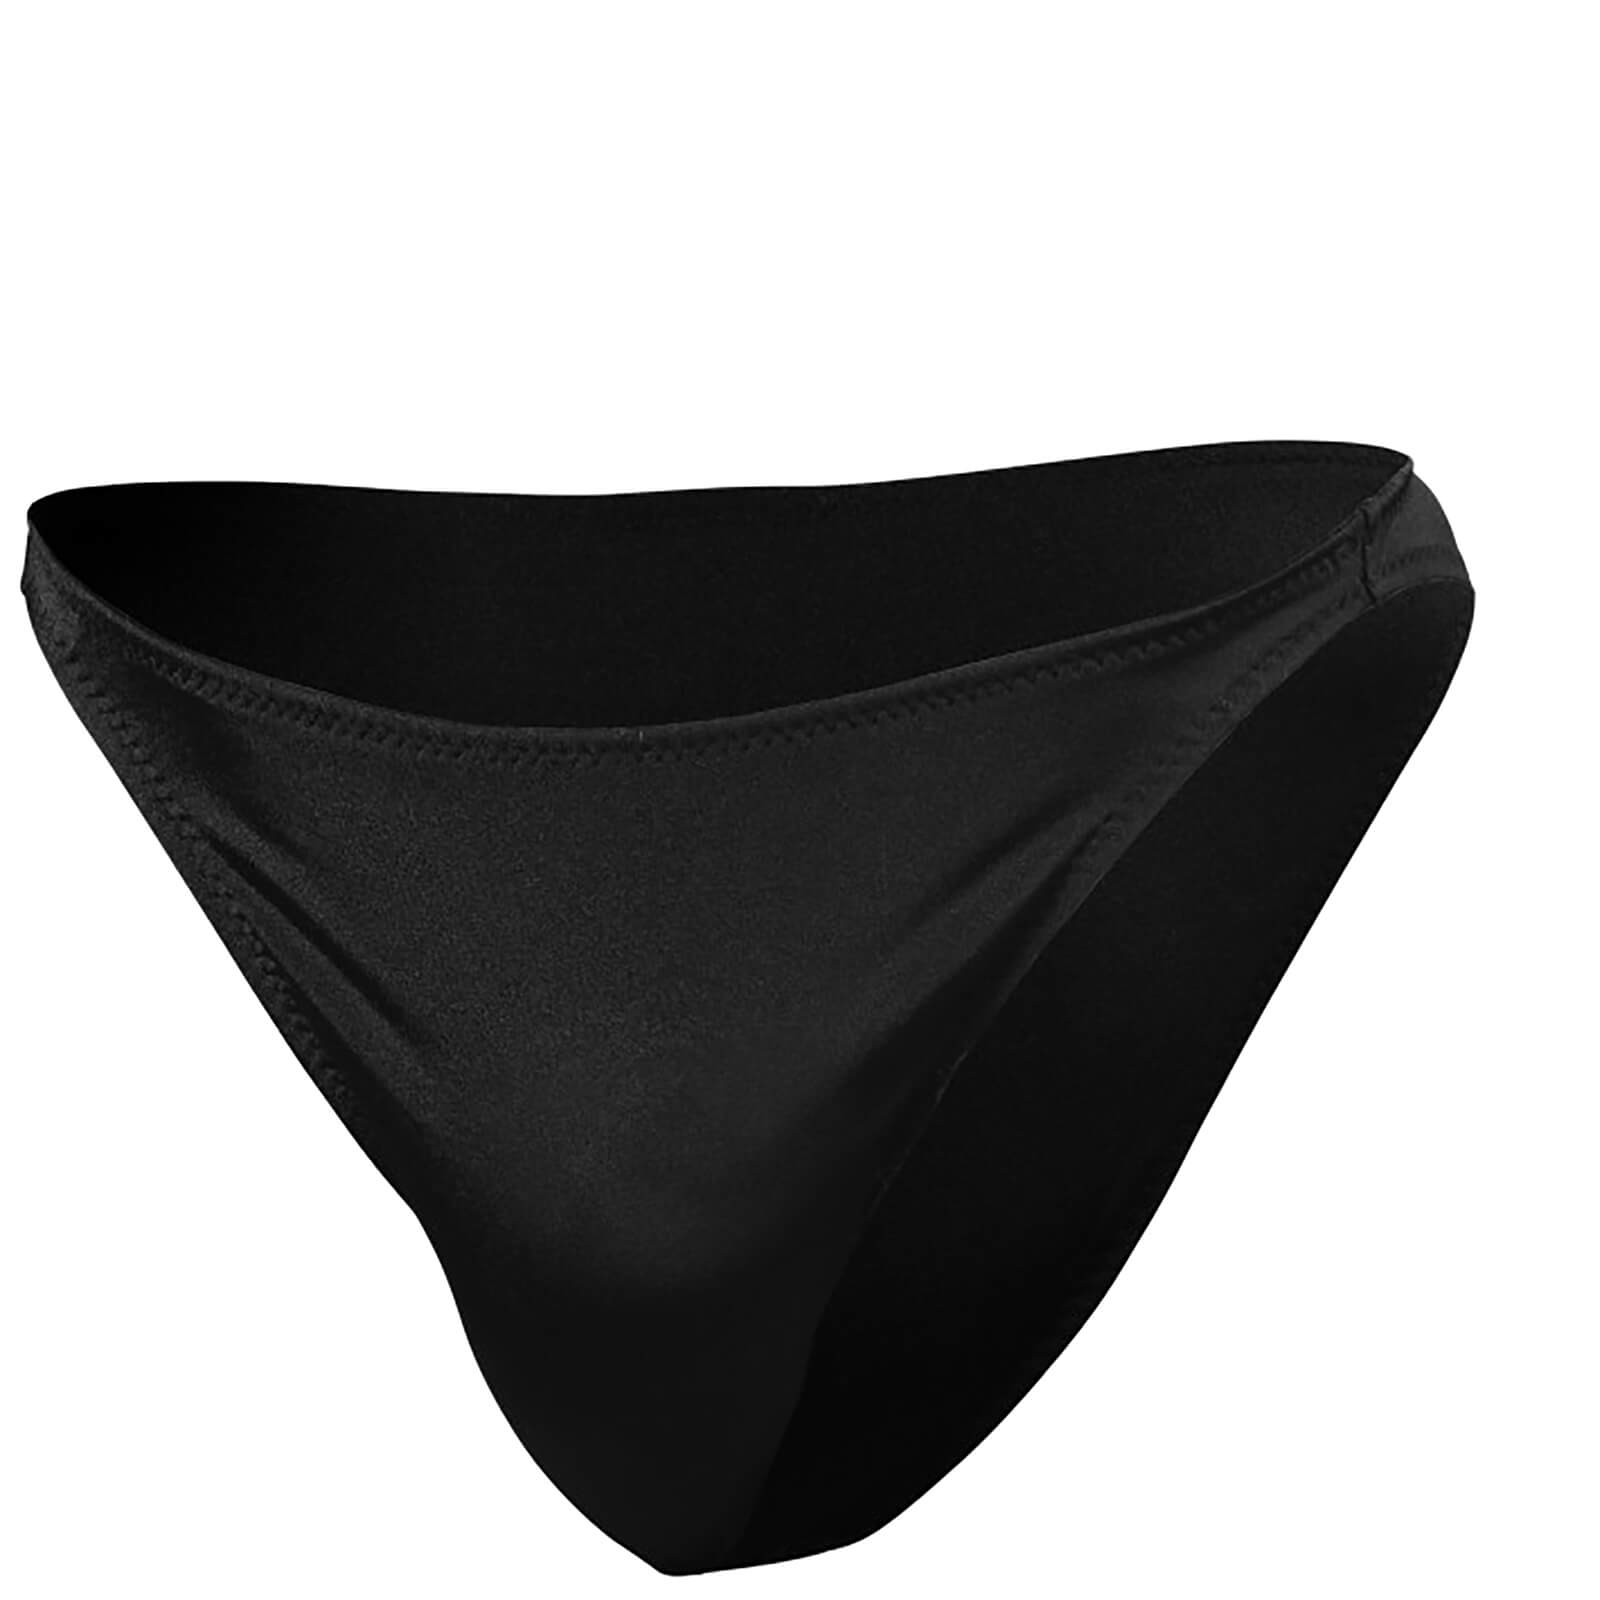 GASP European POSE Trunks - Black - S